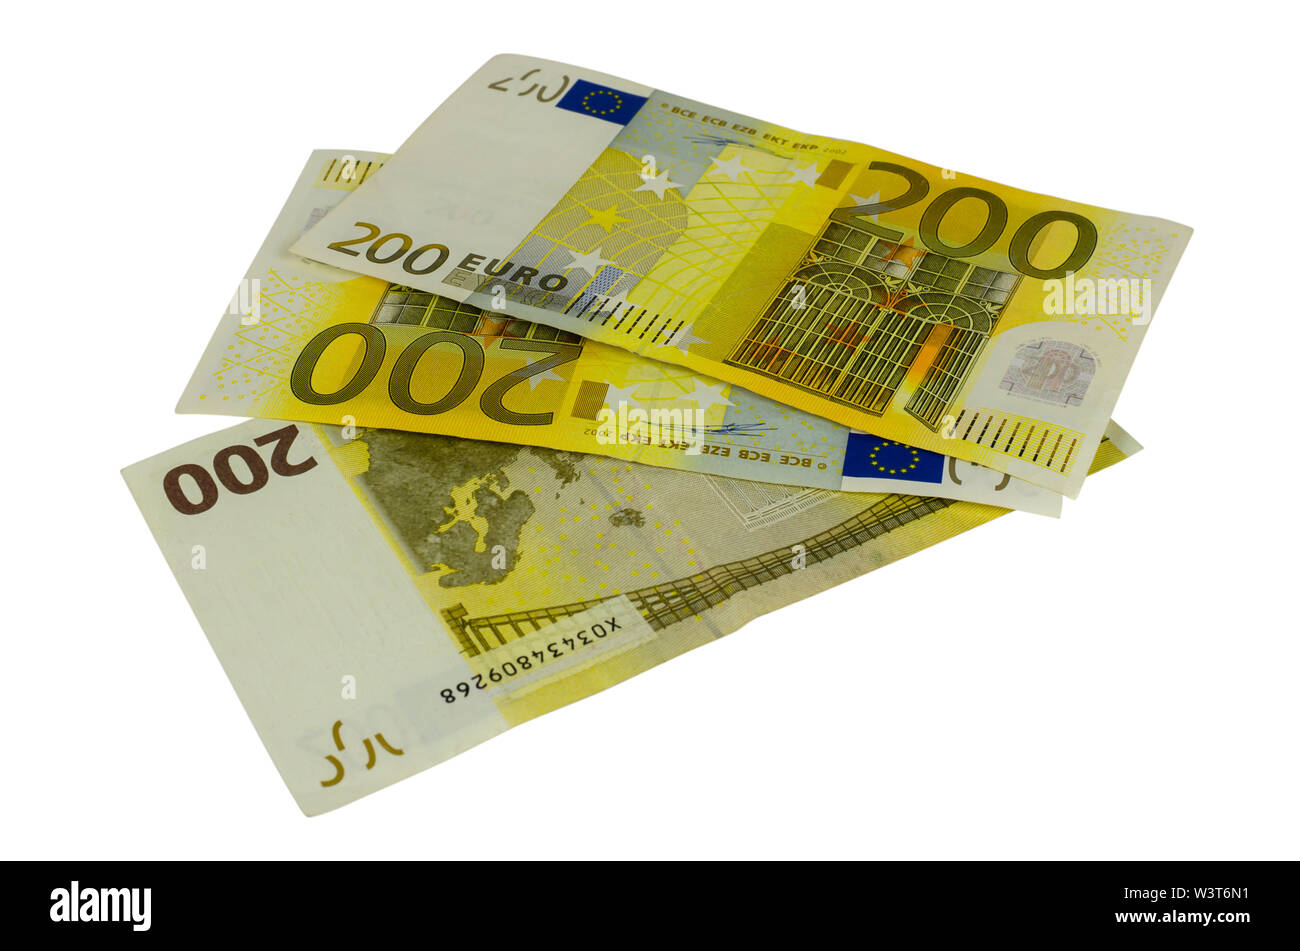 Two hundred Euros banknotes isolated on a white background - Stock Image